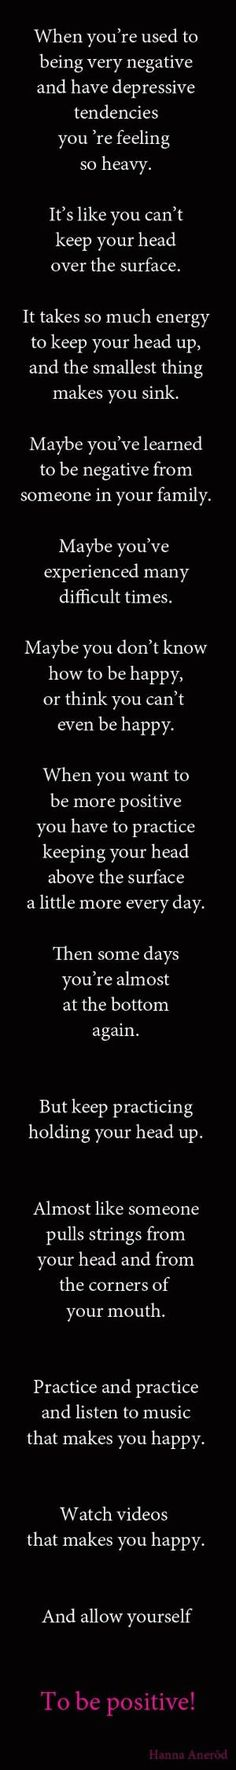 Quotes. Wise words. Be positive - let go of negativity. by LiveLoveLaughMyLife